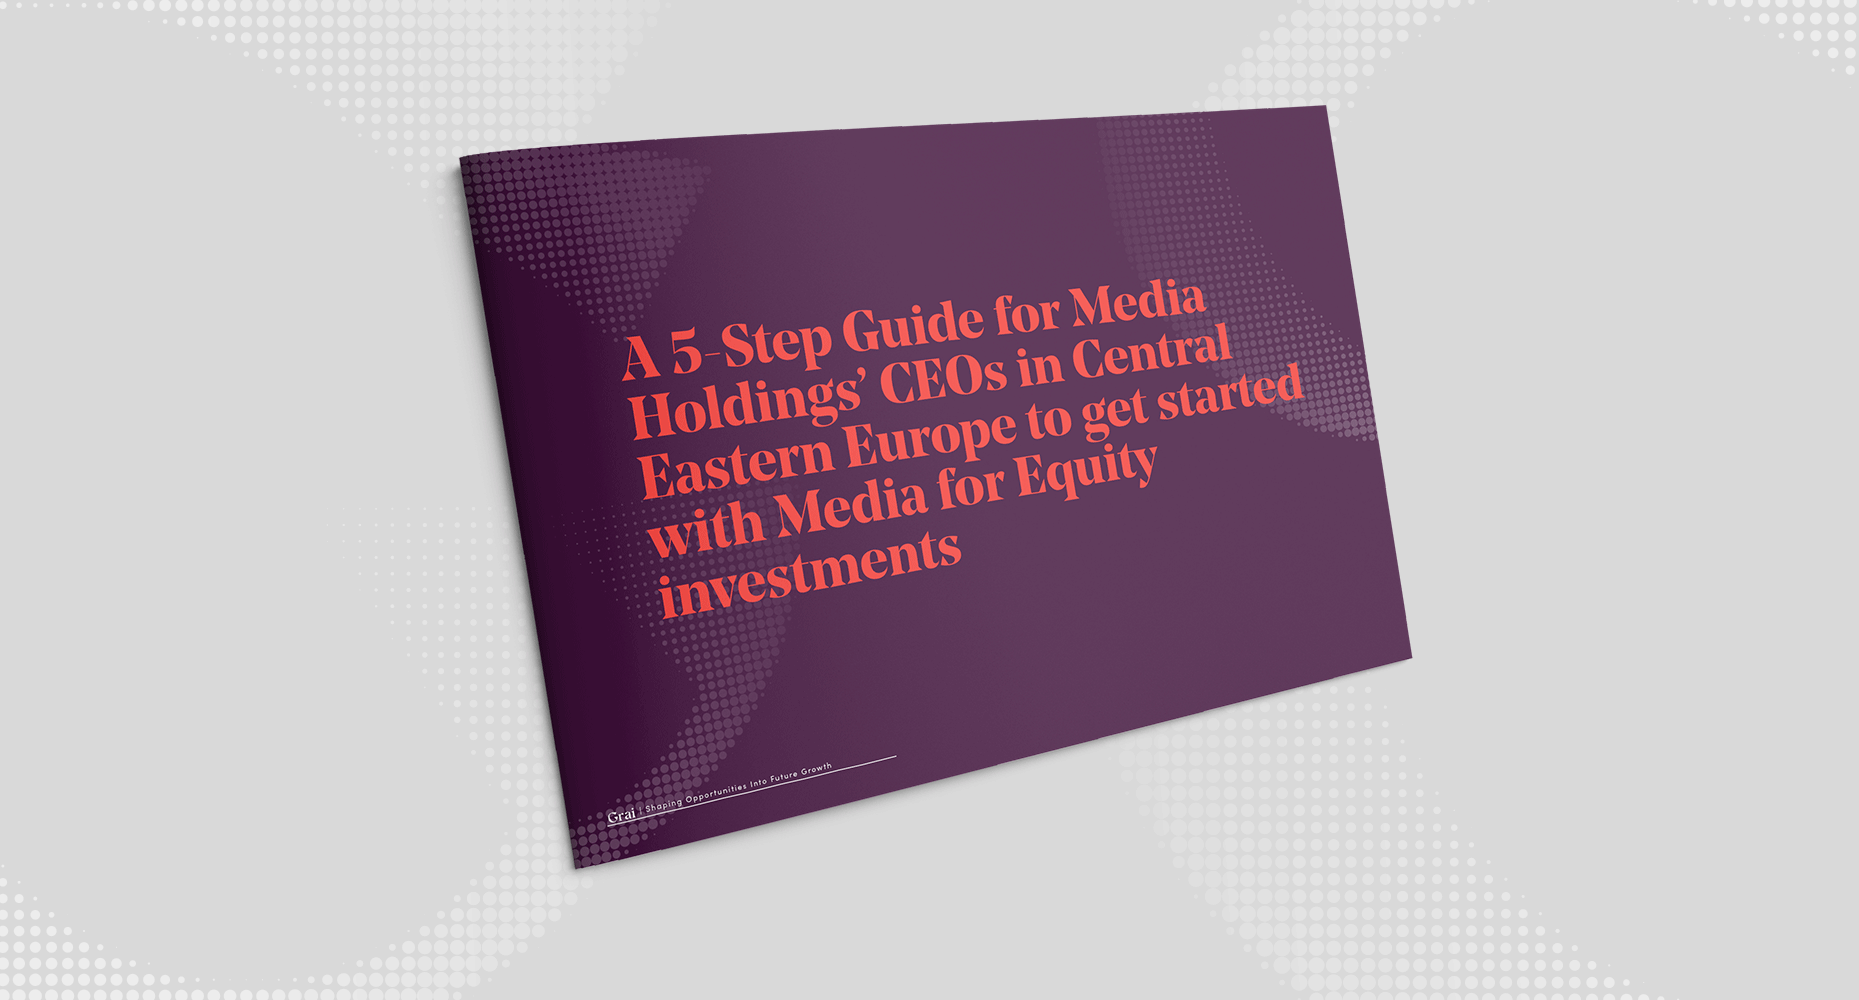 5-Step Guide for Media Holdings' CEOs in Central Eastern Europe to Get Started With Media for Equity Investments